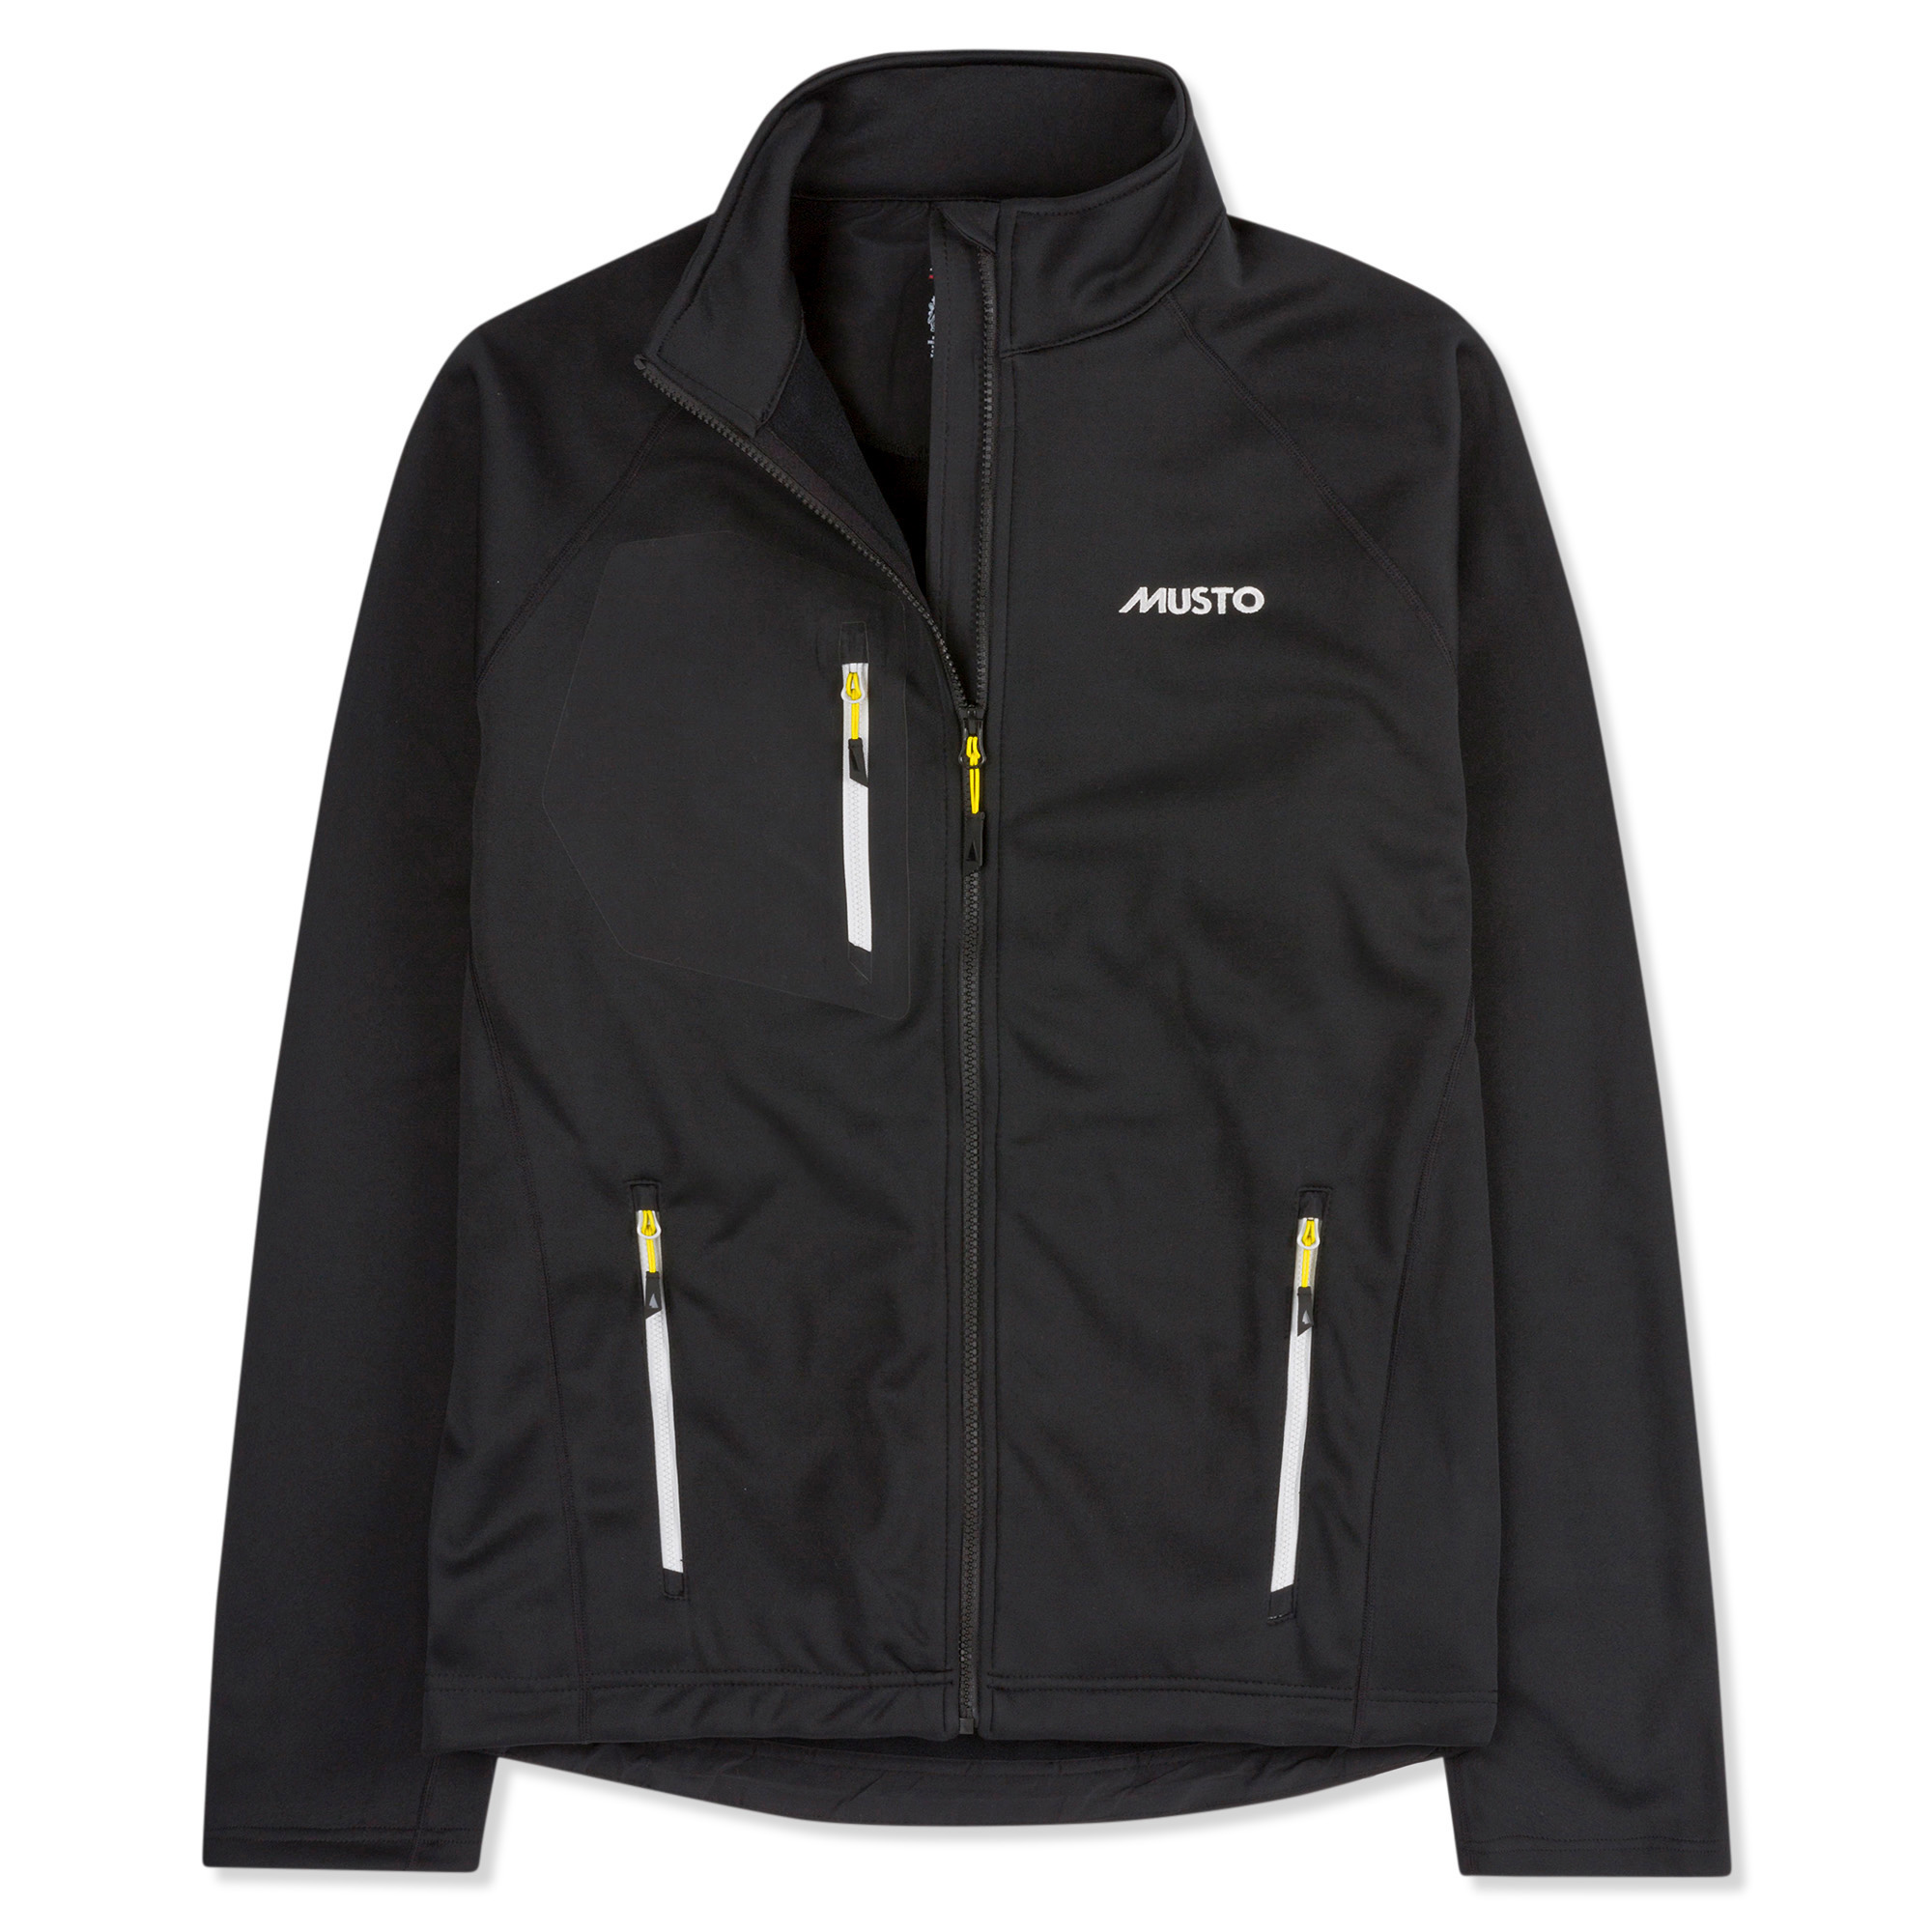 MUSTO FROME MID LAYER FLEECE JACKET (SD0170)